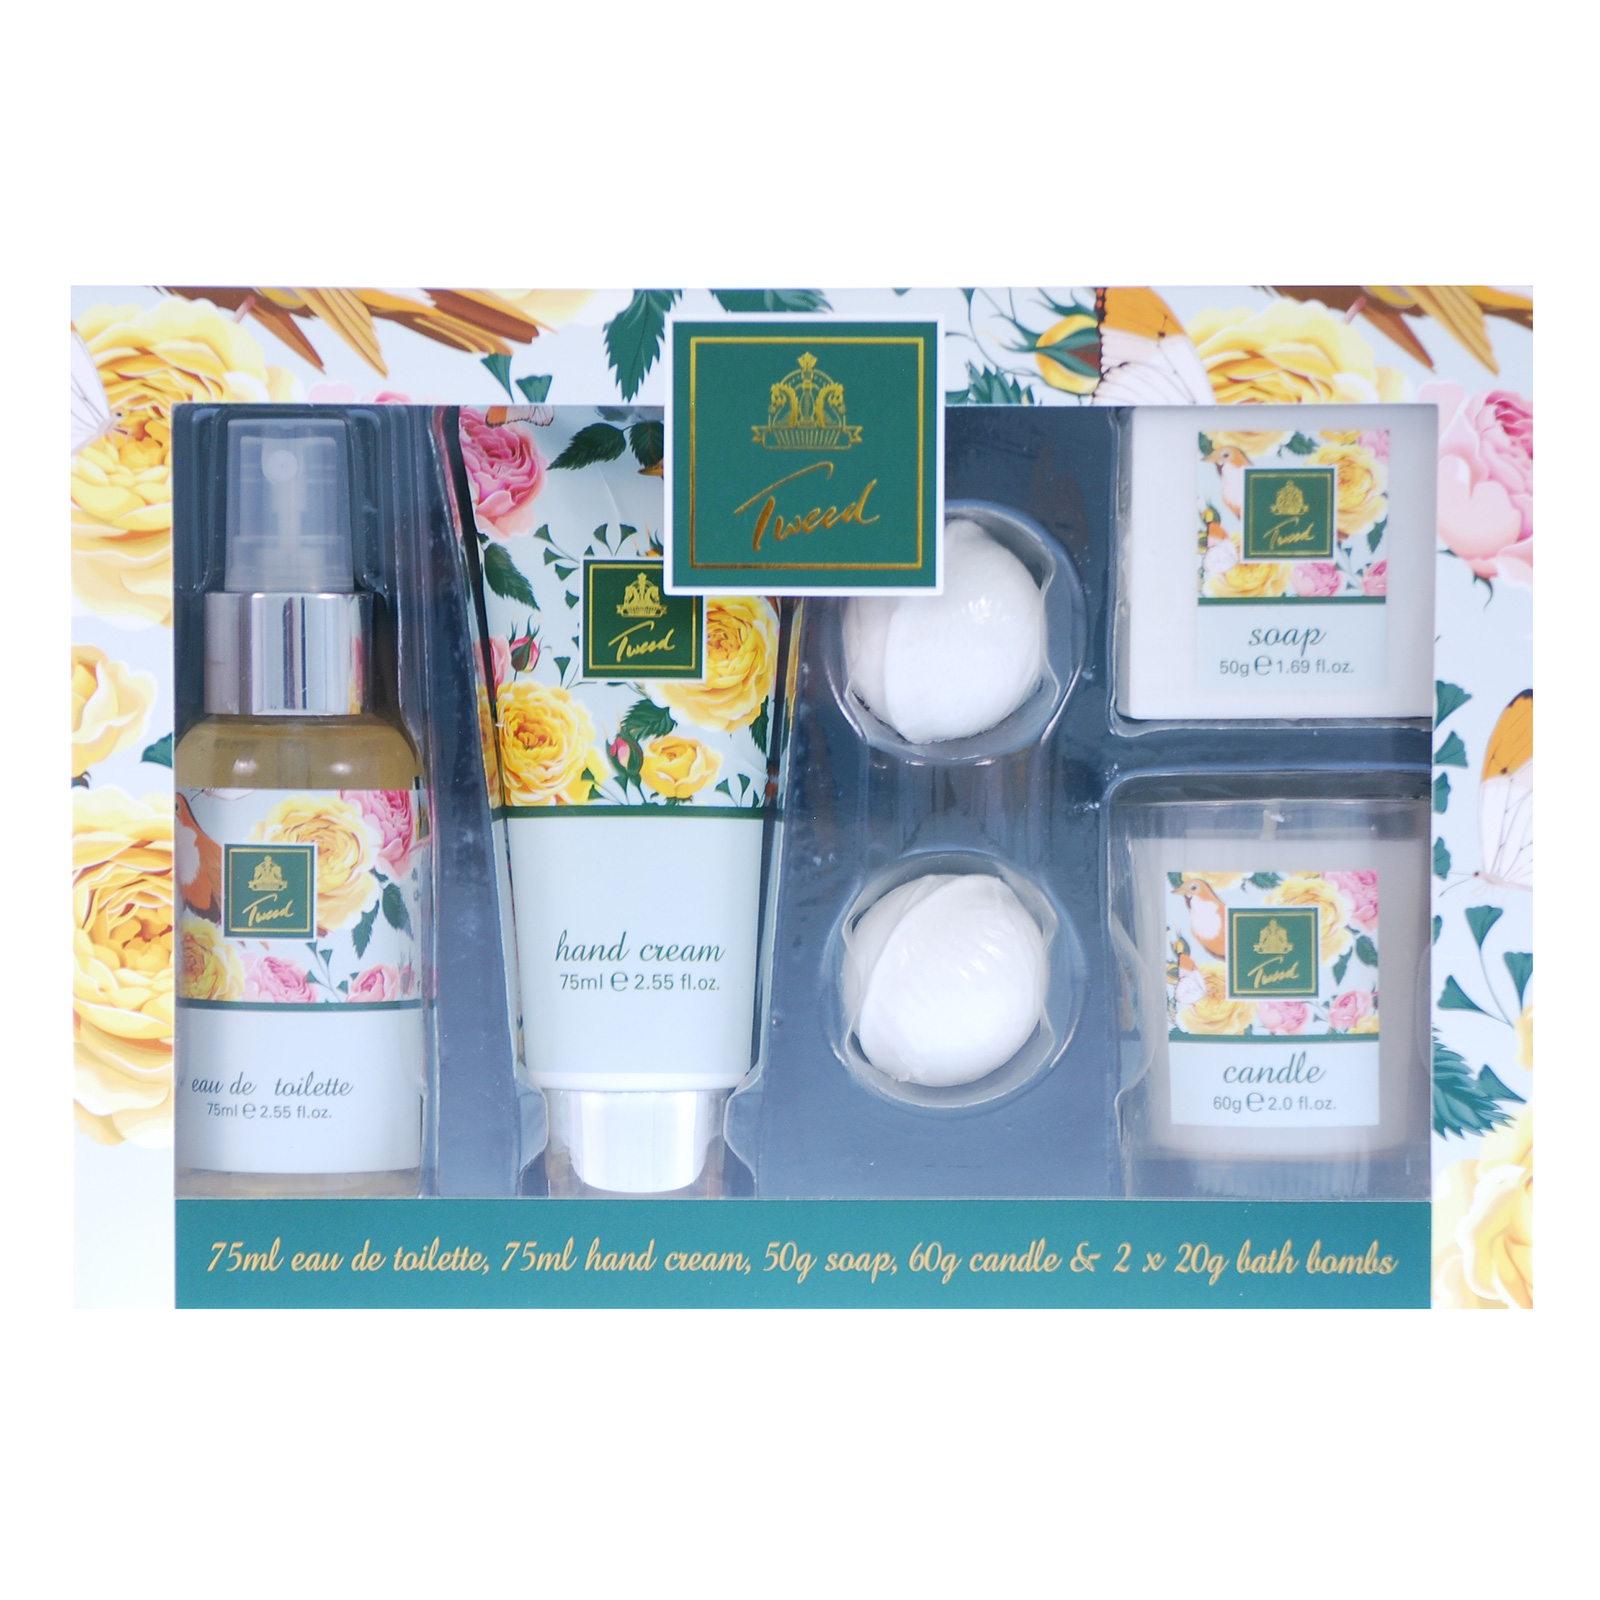 2f0c44661a4 Details about Tweed 6 Piece Gift Set Perfume Hand Cream Soap Candle  Fragrance